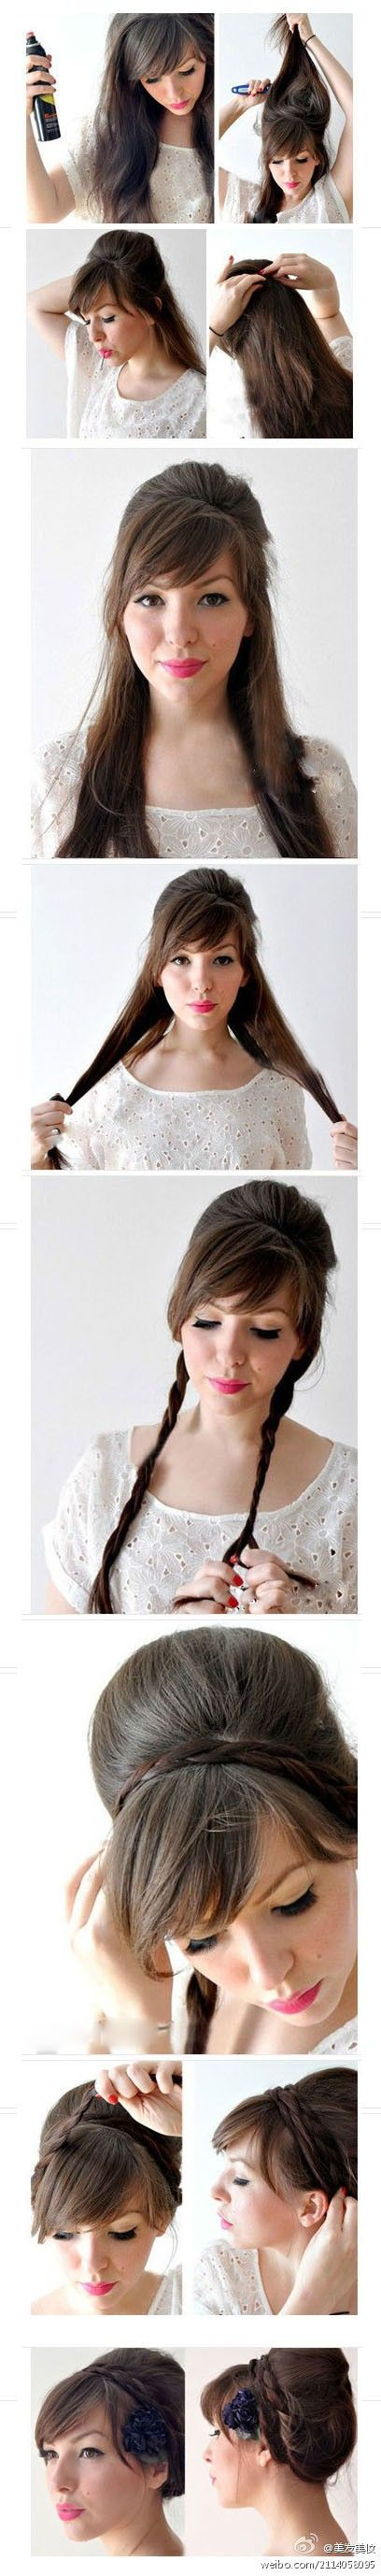 DIY Braided Hairstyle. This reminds me of Adele, and I absolutely obsess on Adele's style.: Braids Hairstyles, Up Dos, Wedding Hair, Long Hair, Longer Hair, Cute Hair, Hair Style, Updo, Braids Headbands